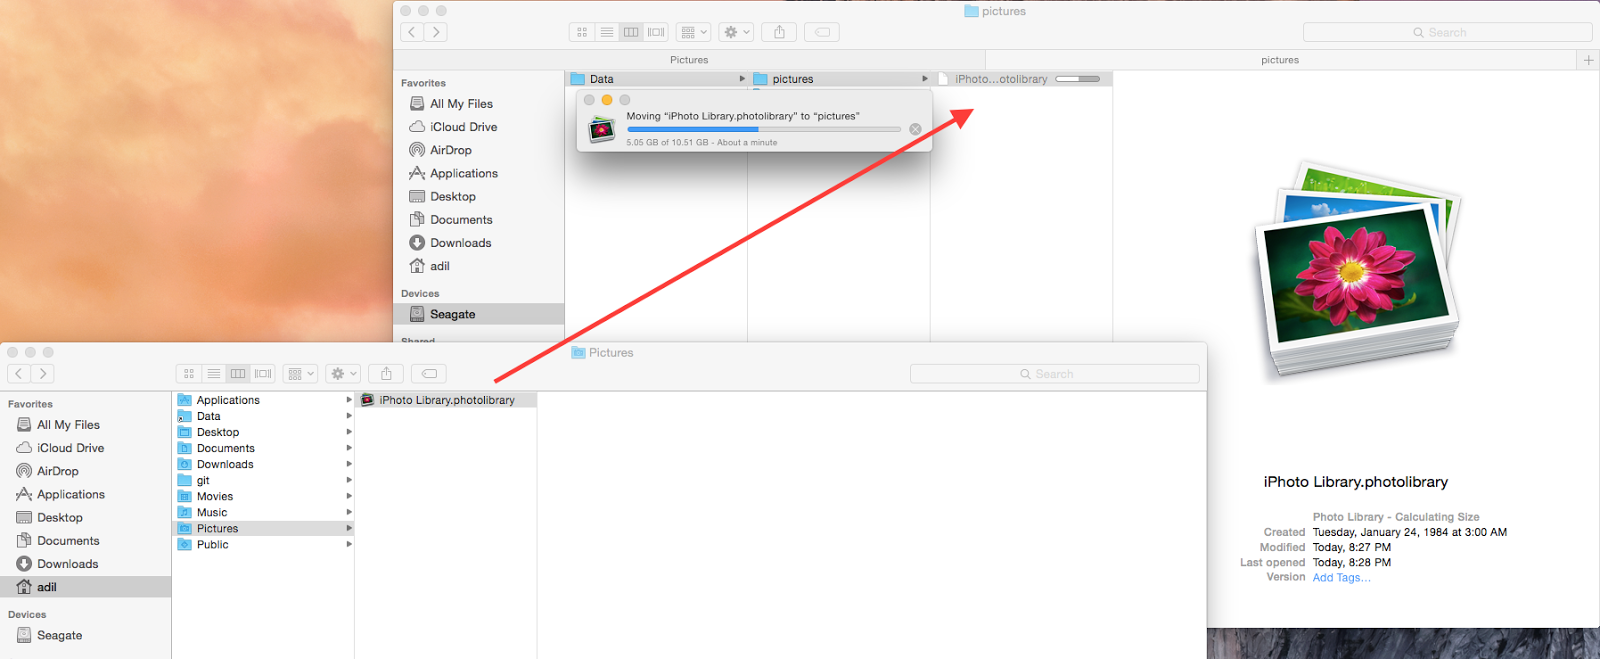 Adil Hindistan's Technology Blog: How to move iPhoto Library to a